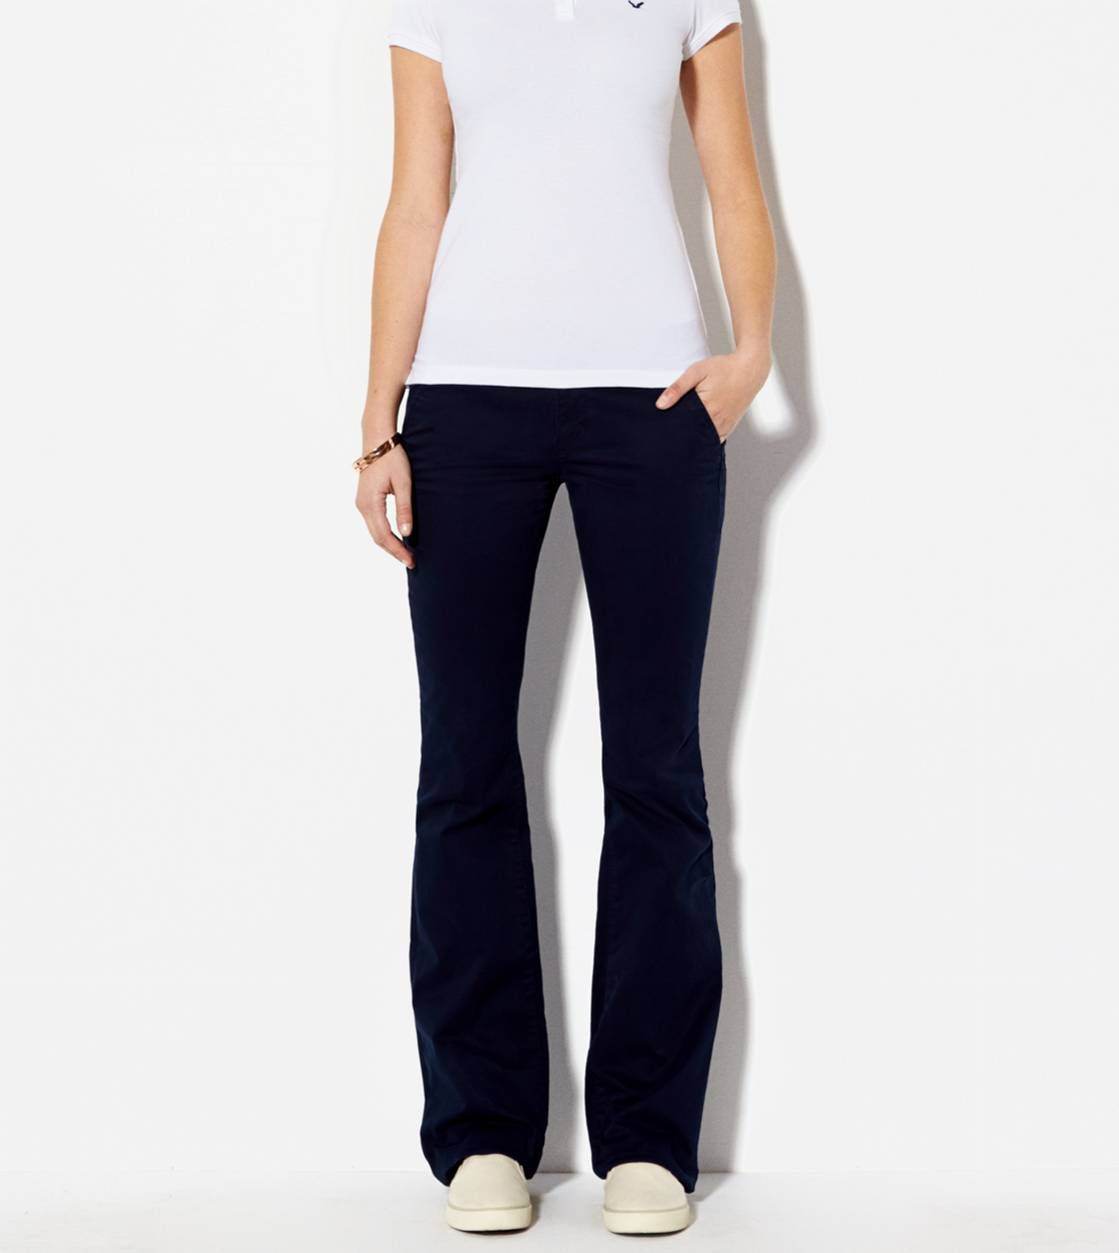 American Eagle Pant Sizes